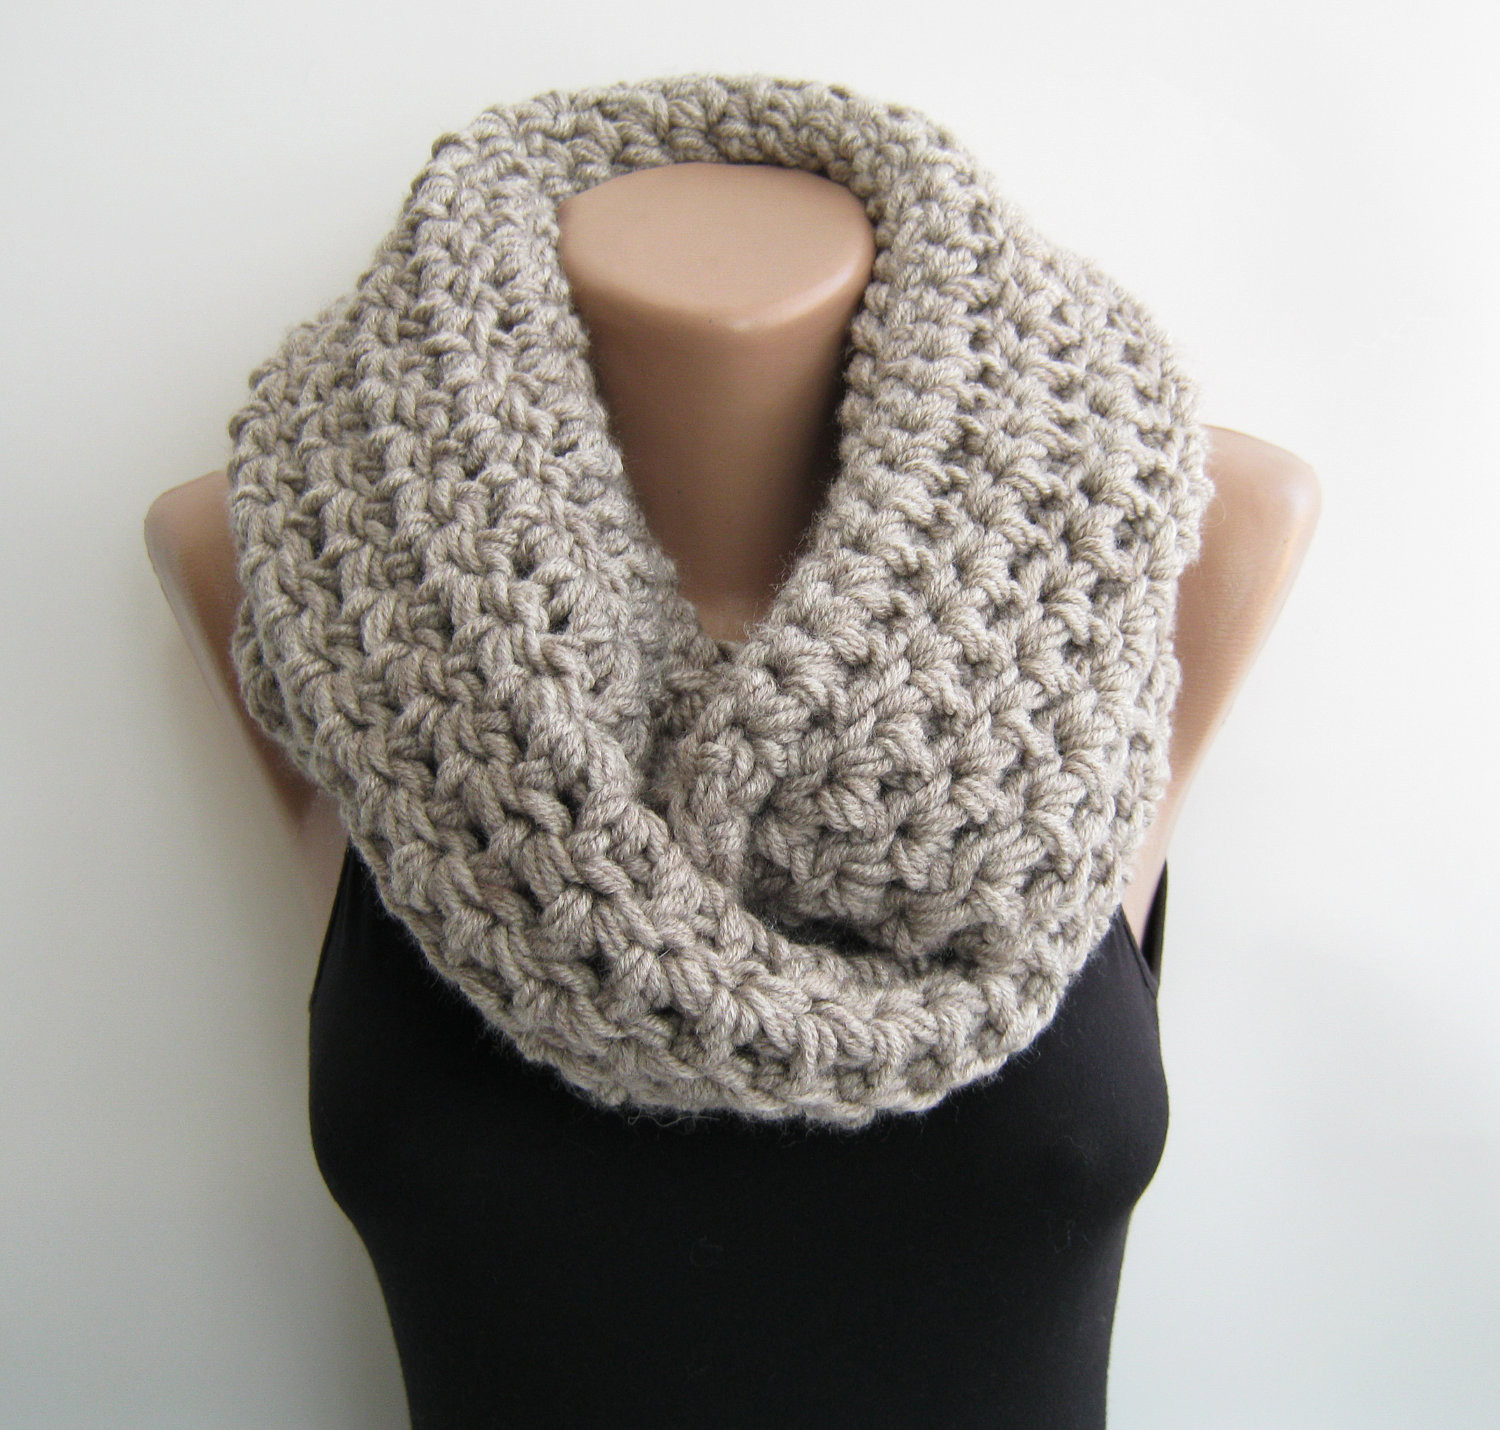 Crochet Infinity Scarves Awesome Chunky Circle Scarf Crochet Pattern Crochet and Knit Of New 44 Photos Crochet Infinity Scarves